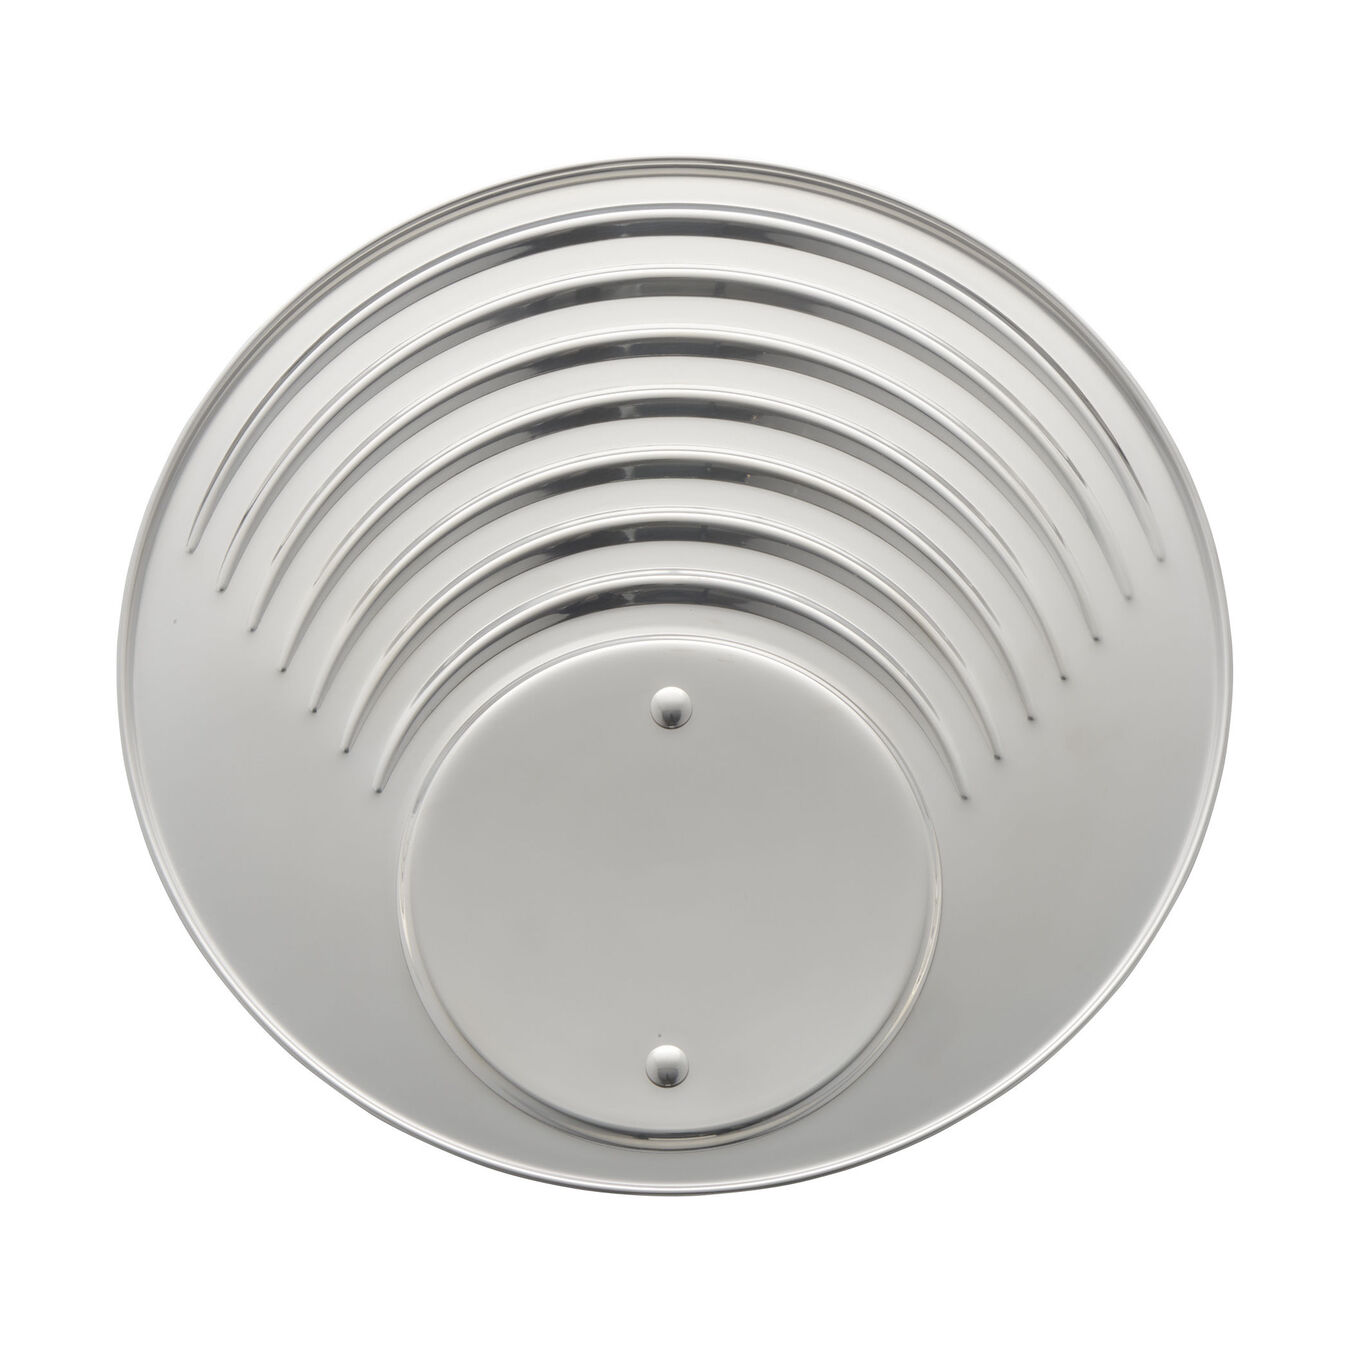 Lid, 18/10 Stainless Steel,,large 2